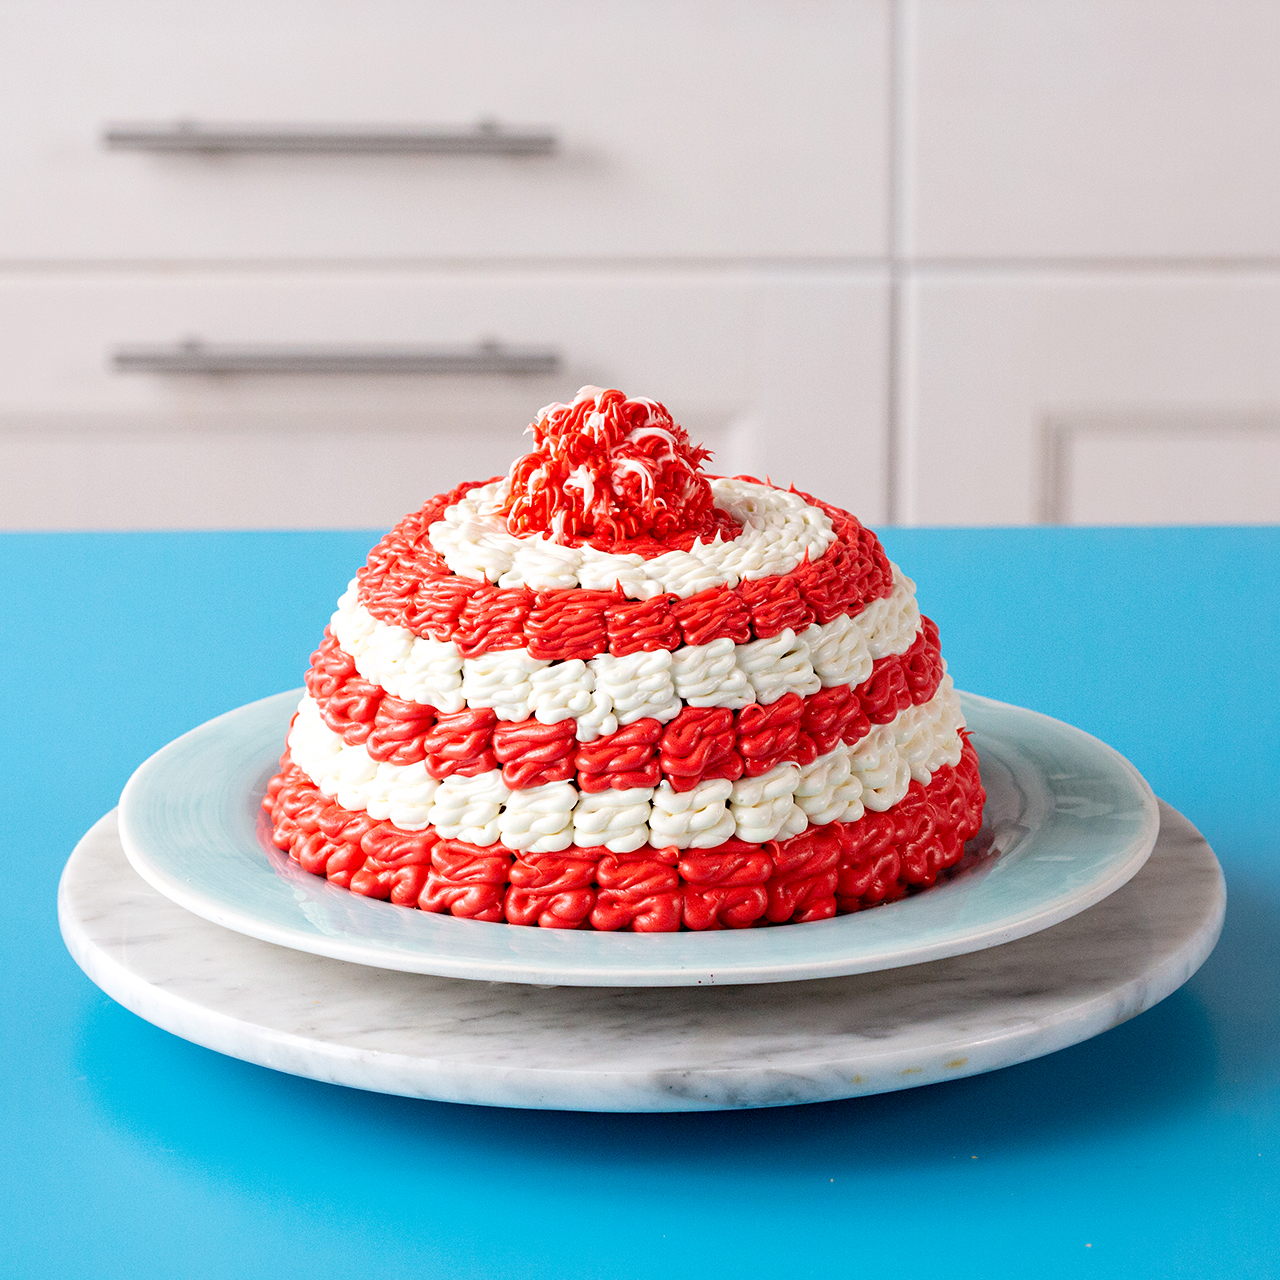 red and white winter hat cake on plate